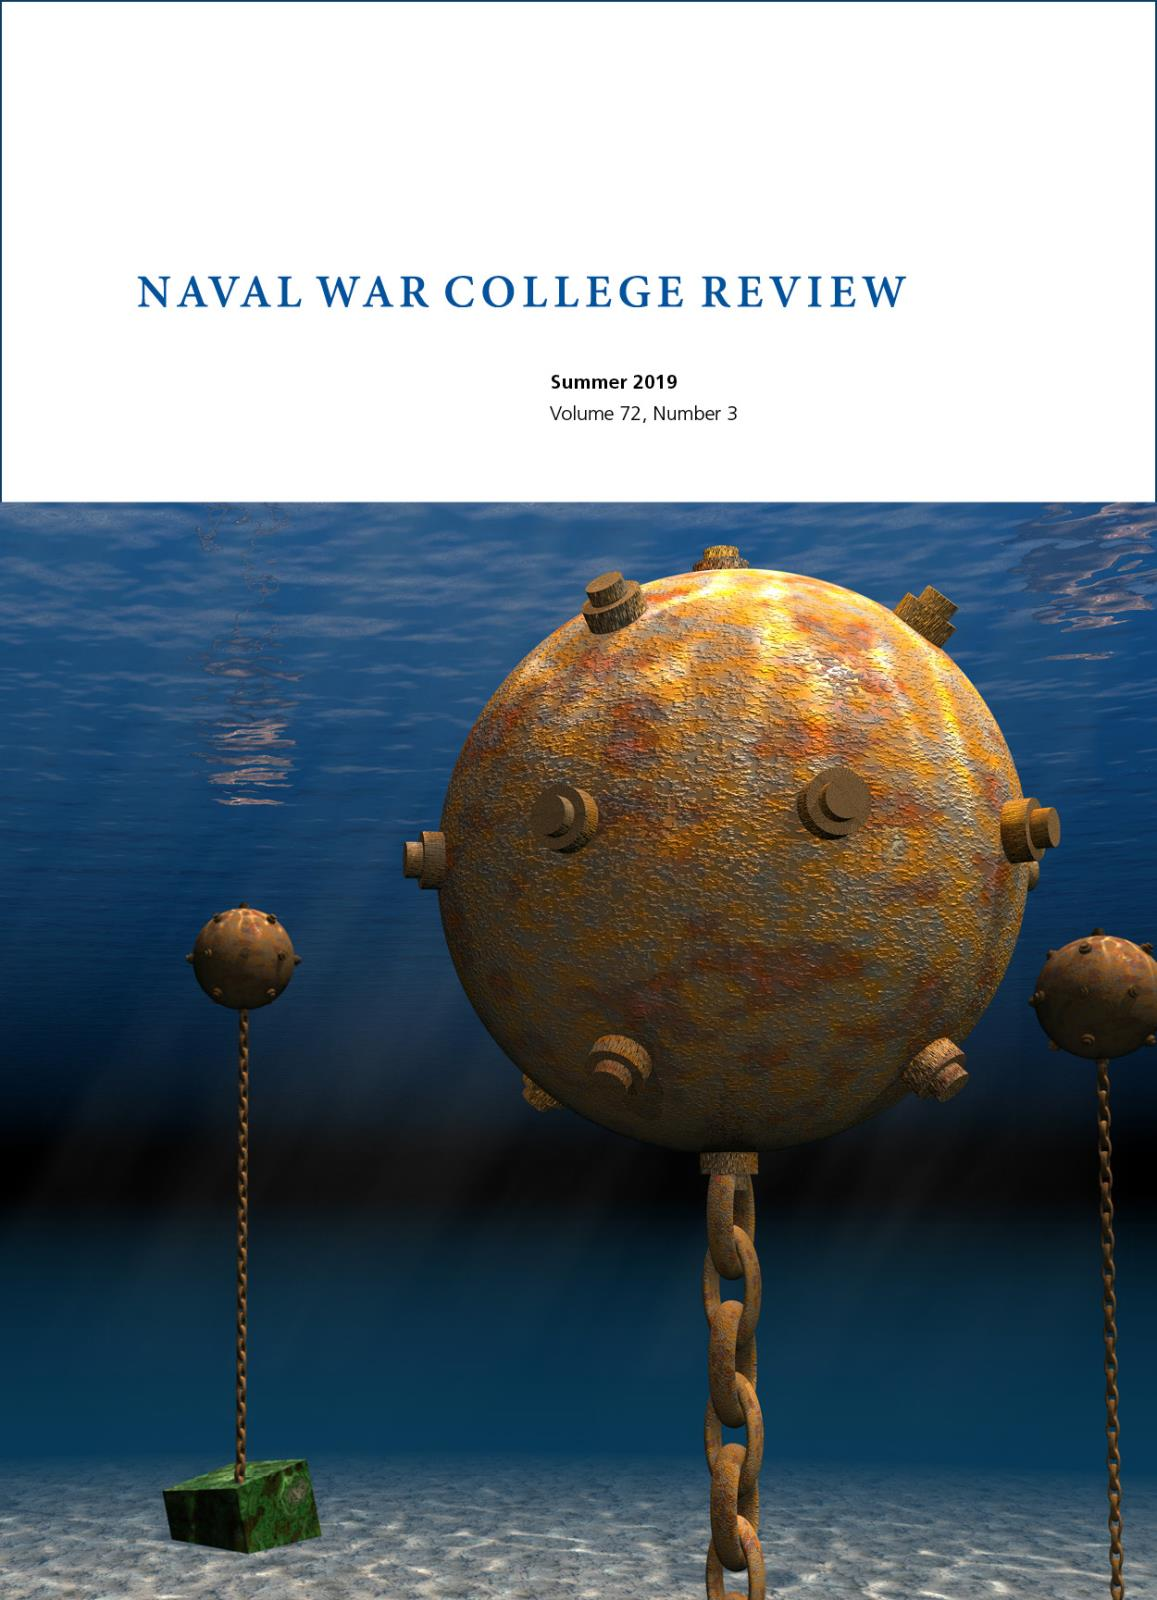 NWC Review Summer 2019 cover image